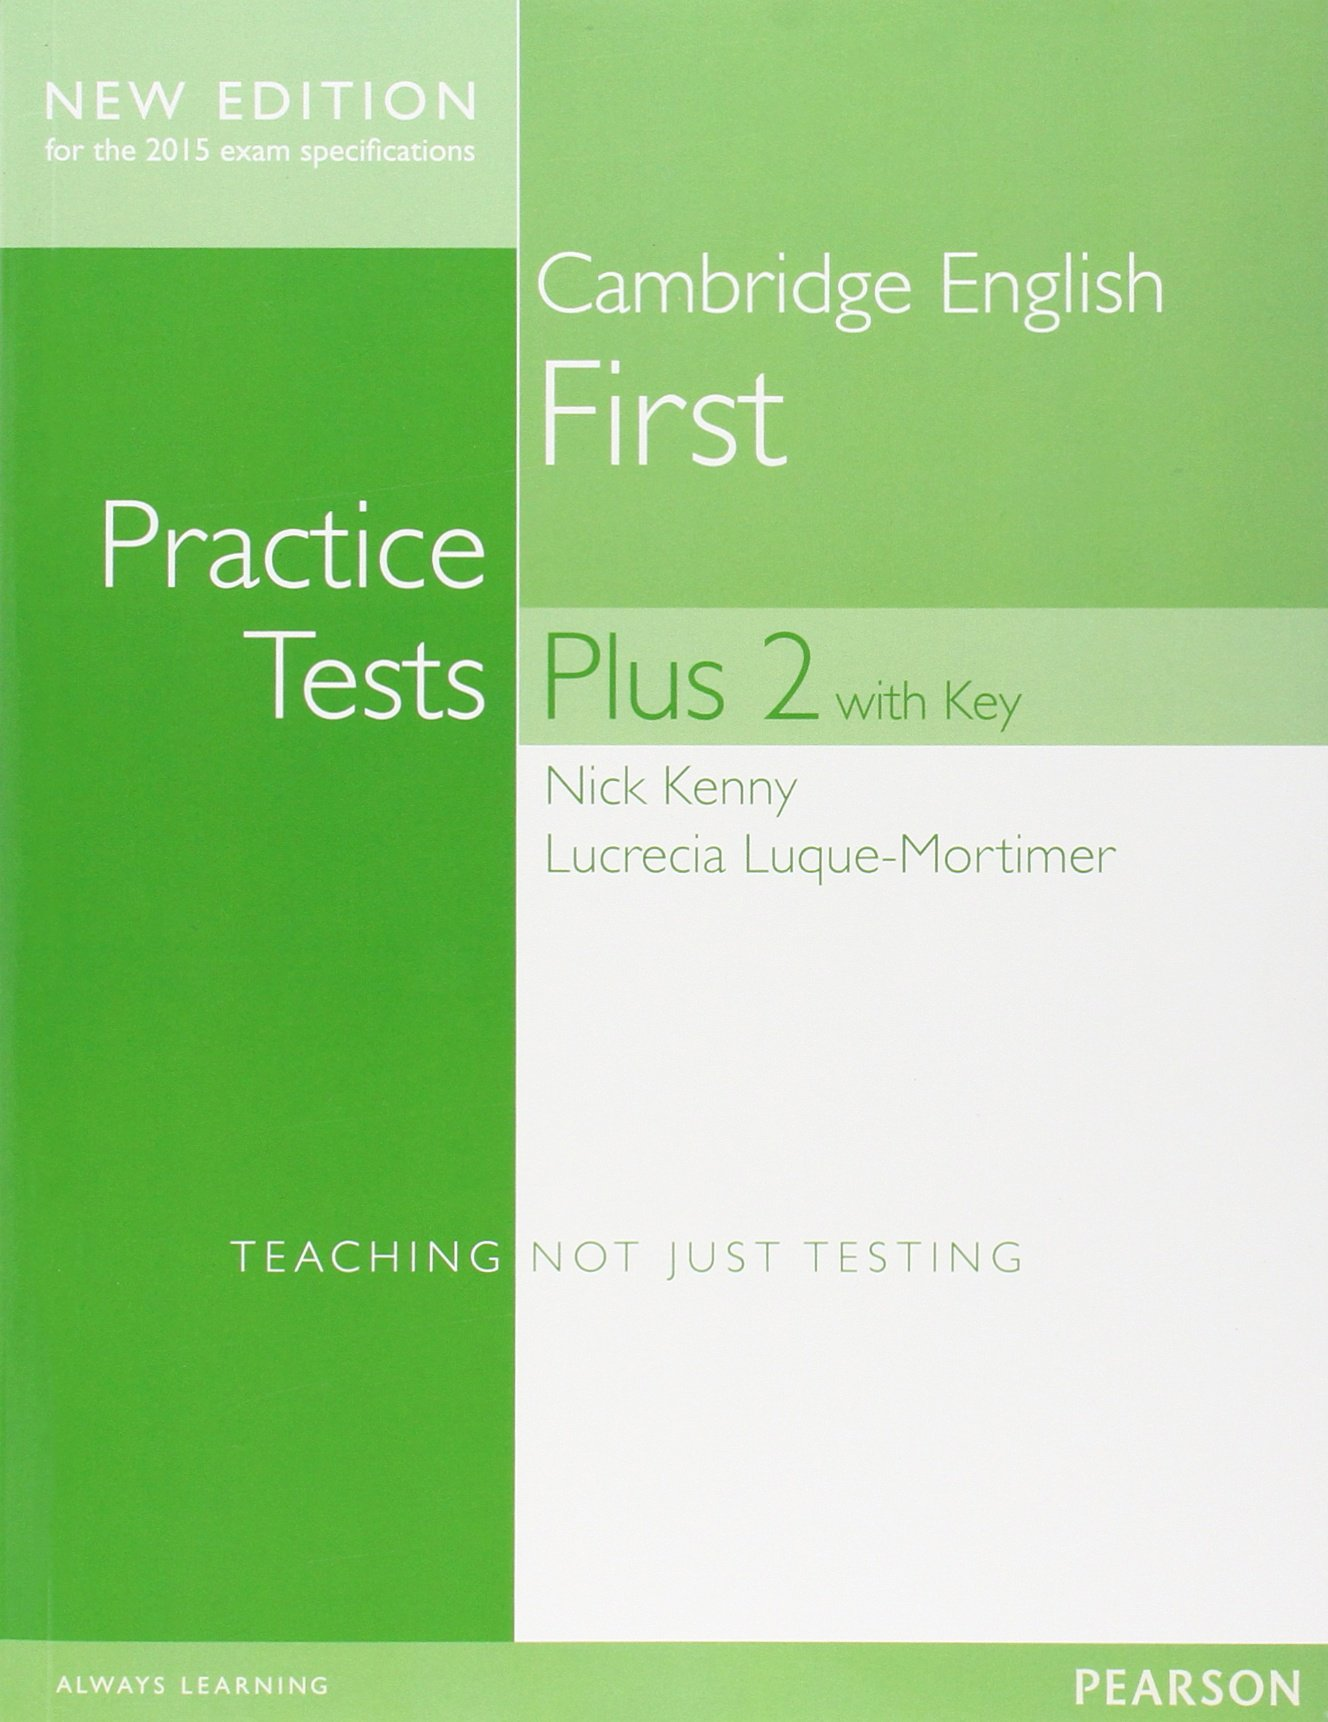 Cambridge English First Practice Tests Plus 2 New Edition